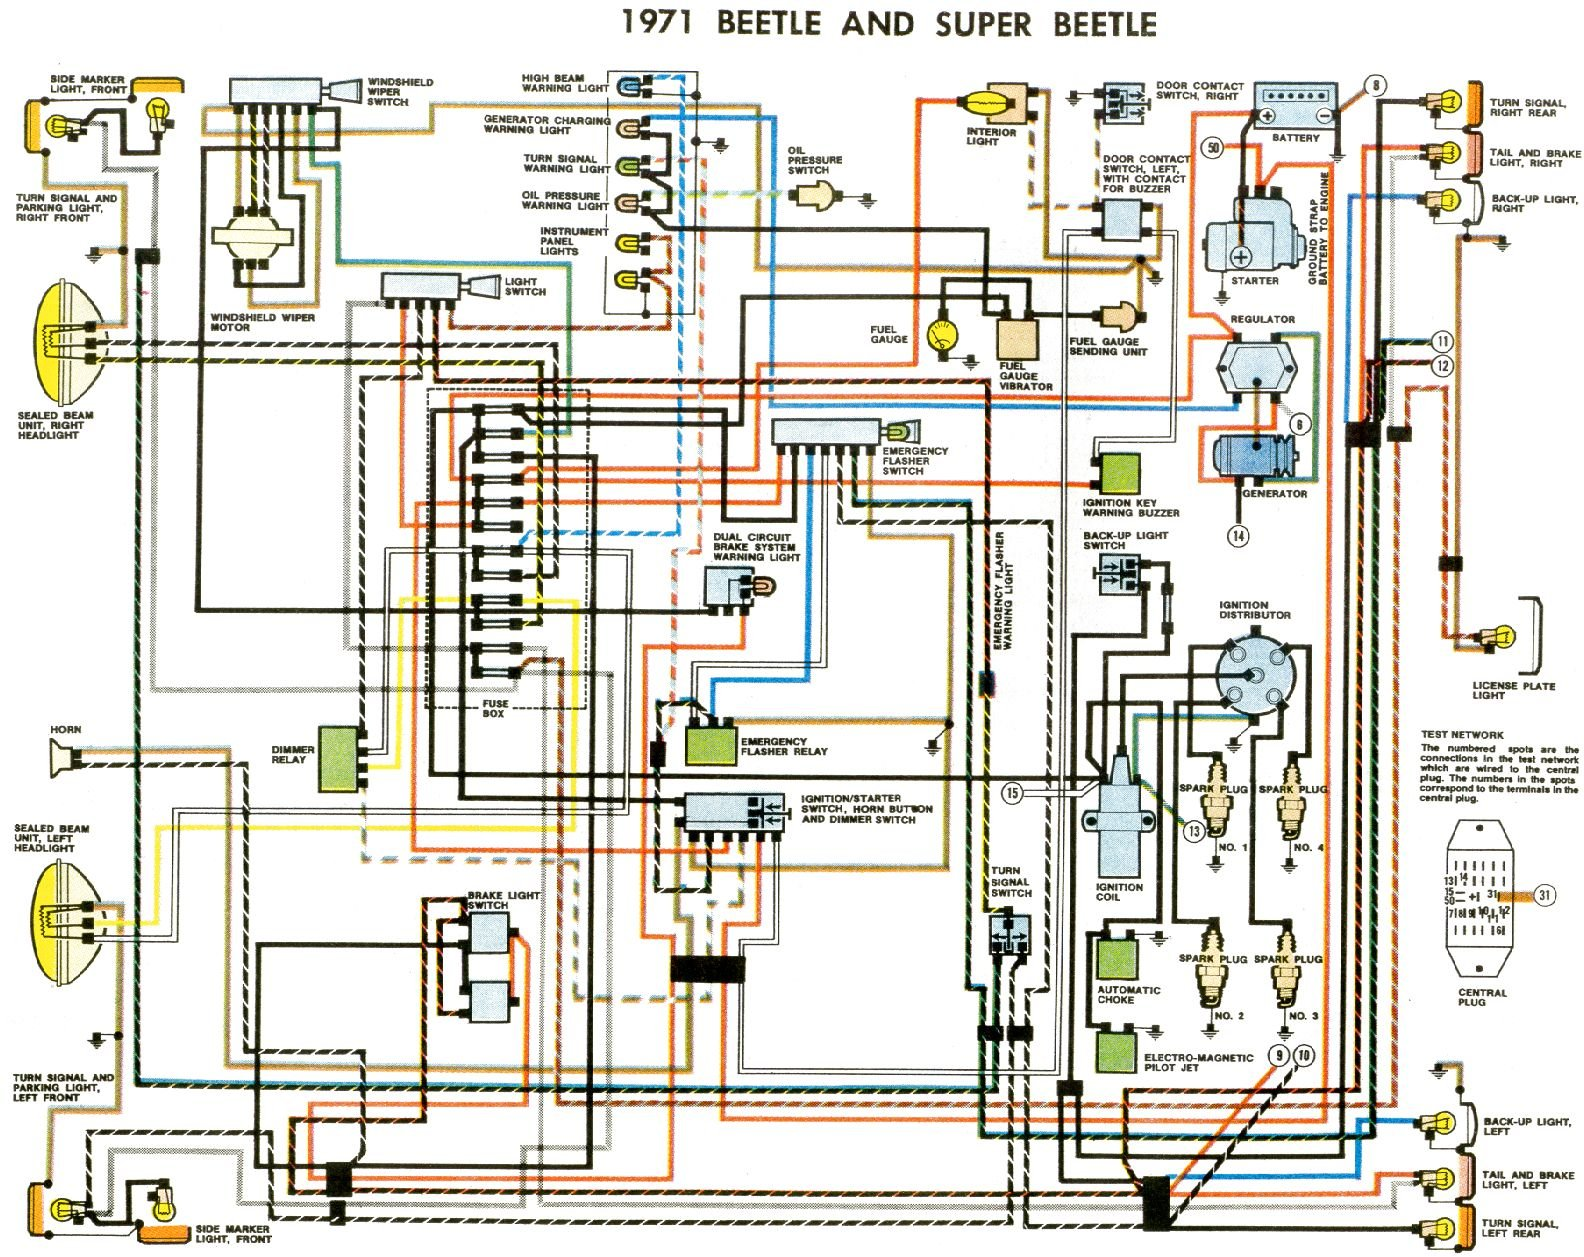 1971 Beetle Wiring Diagram  Usa